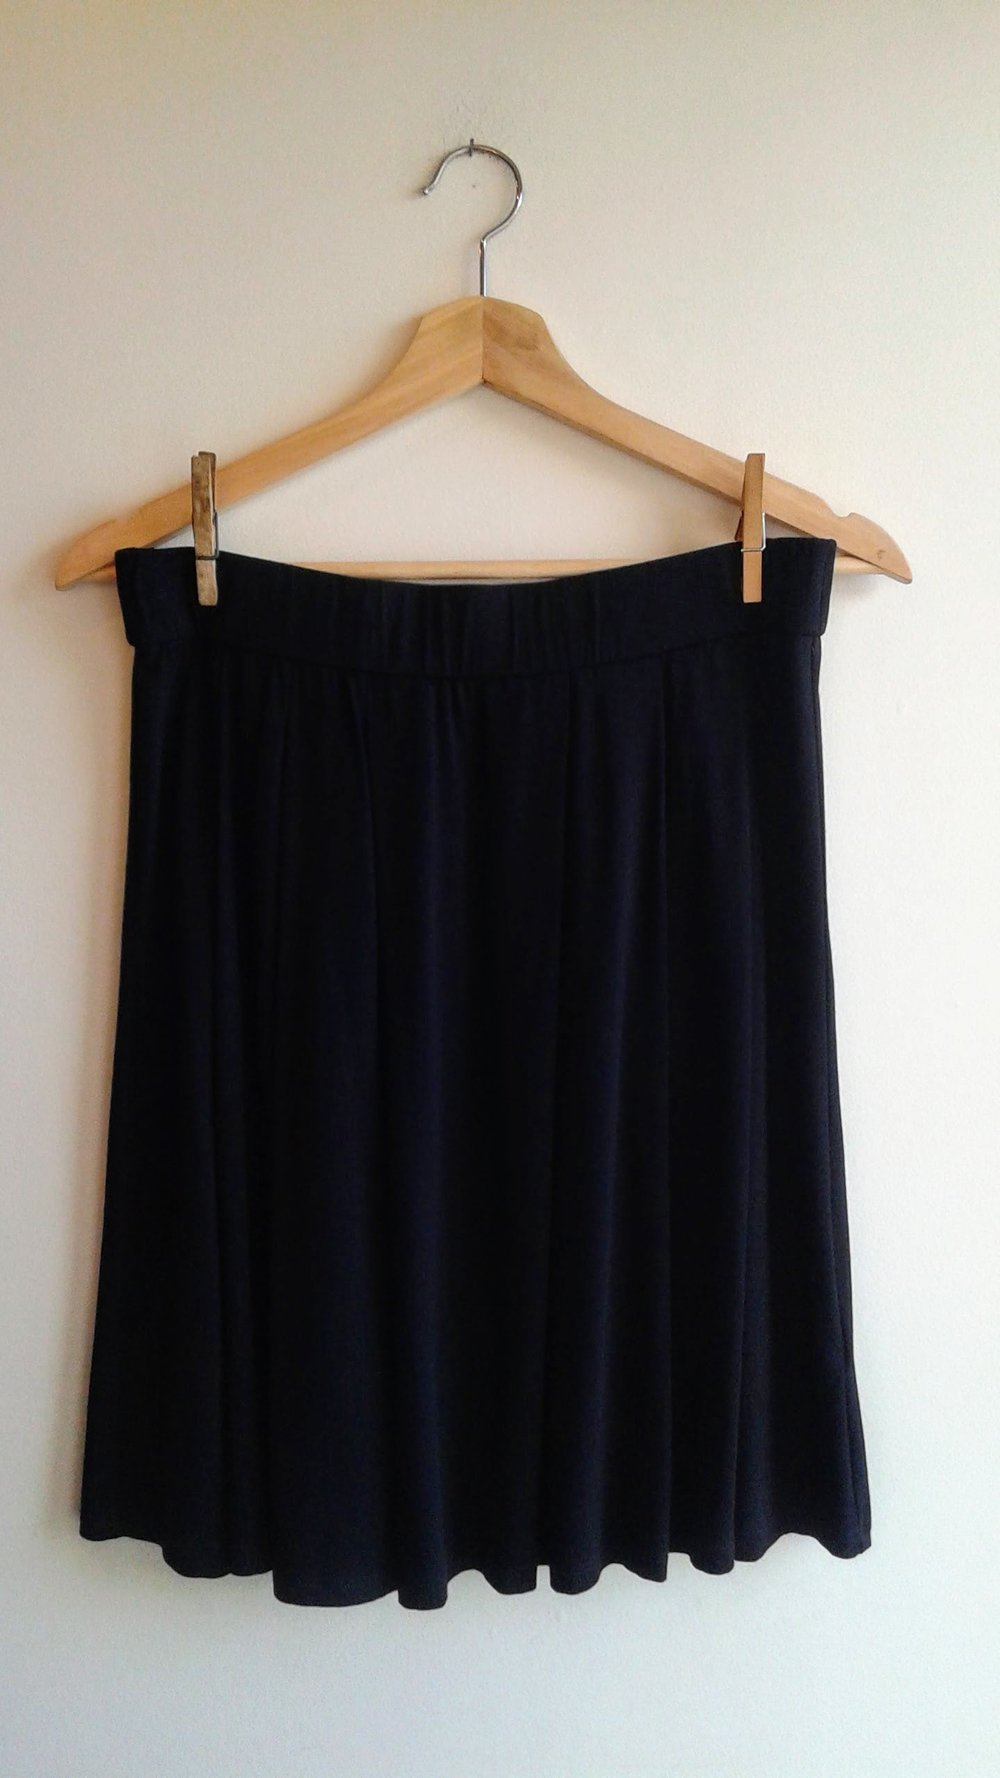 Eileen Fisher skirt; Size M, $36